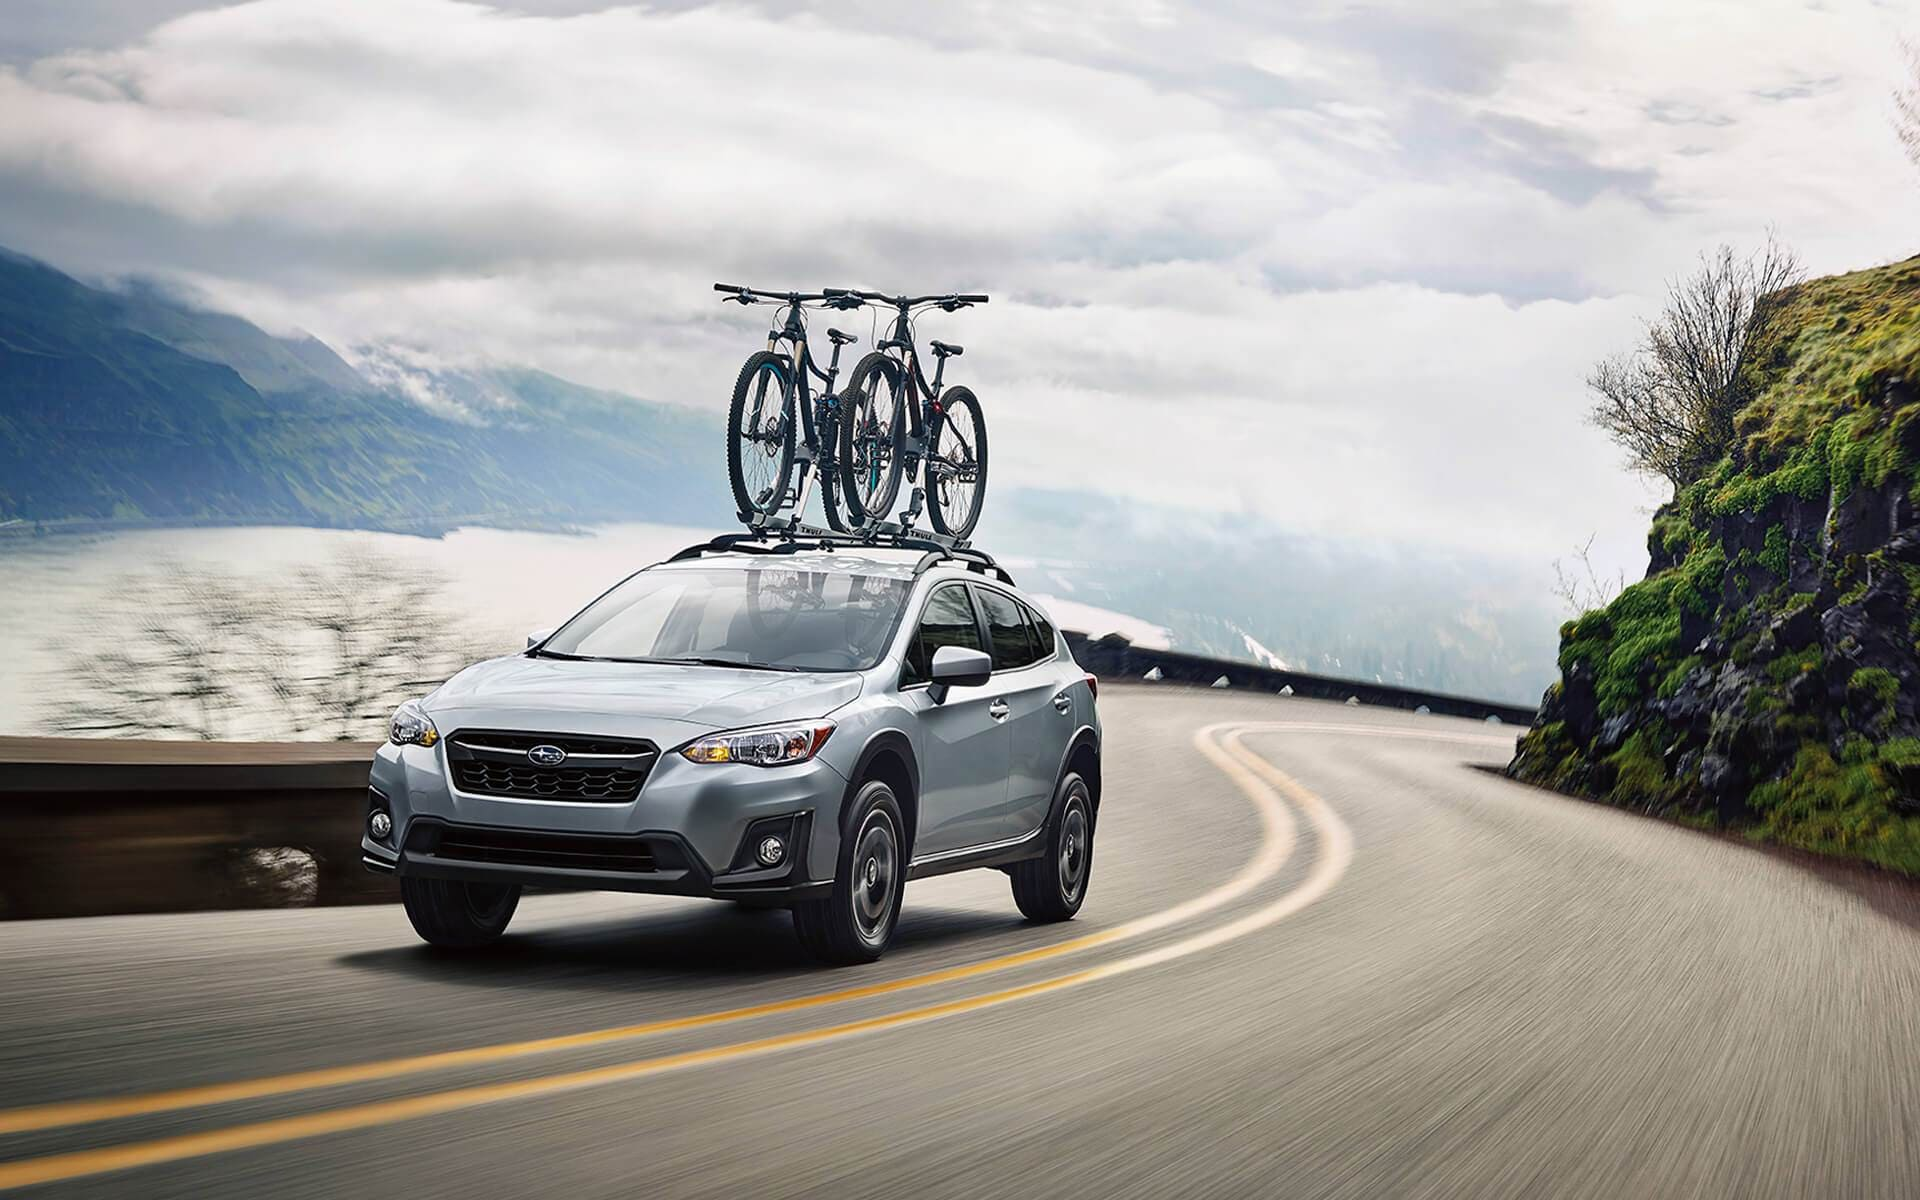 camping accessories for your subaru suv